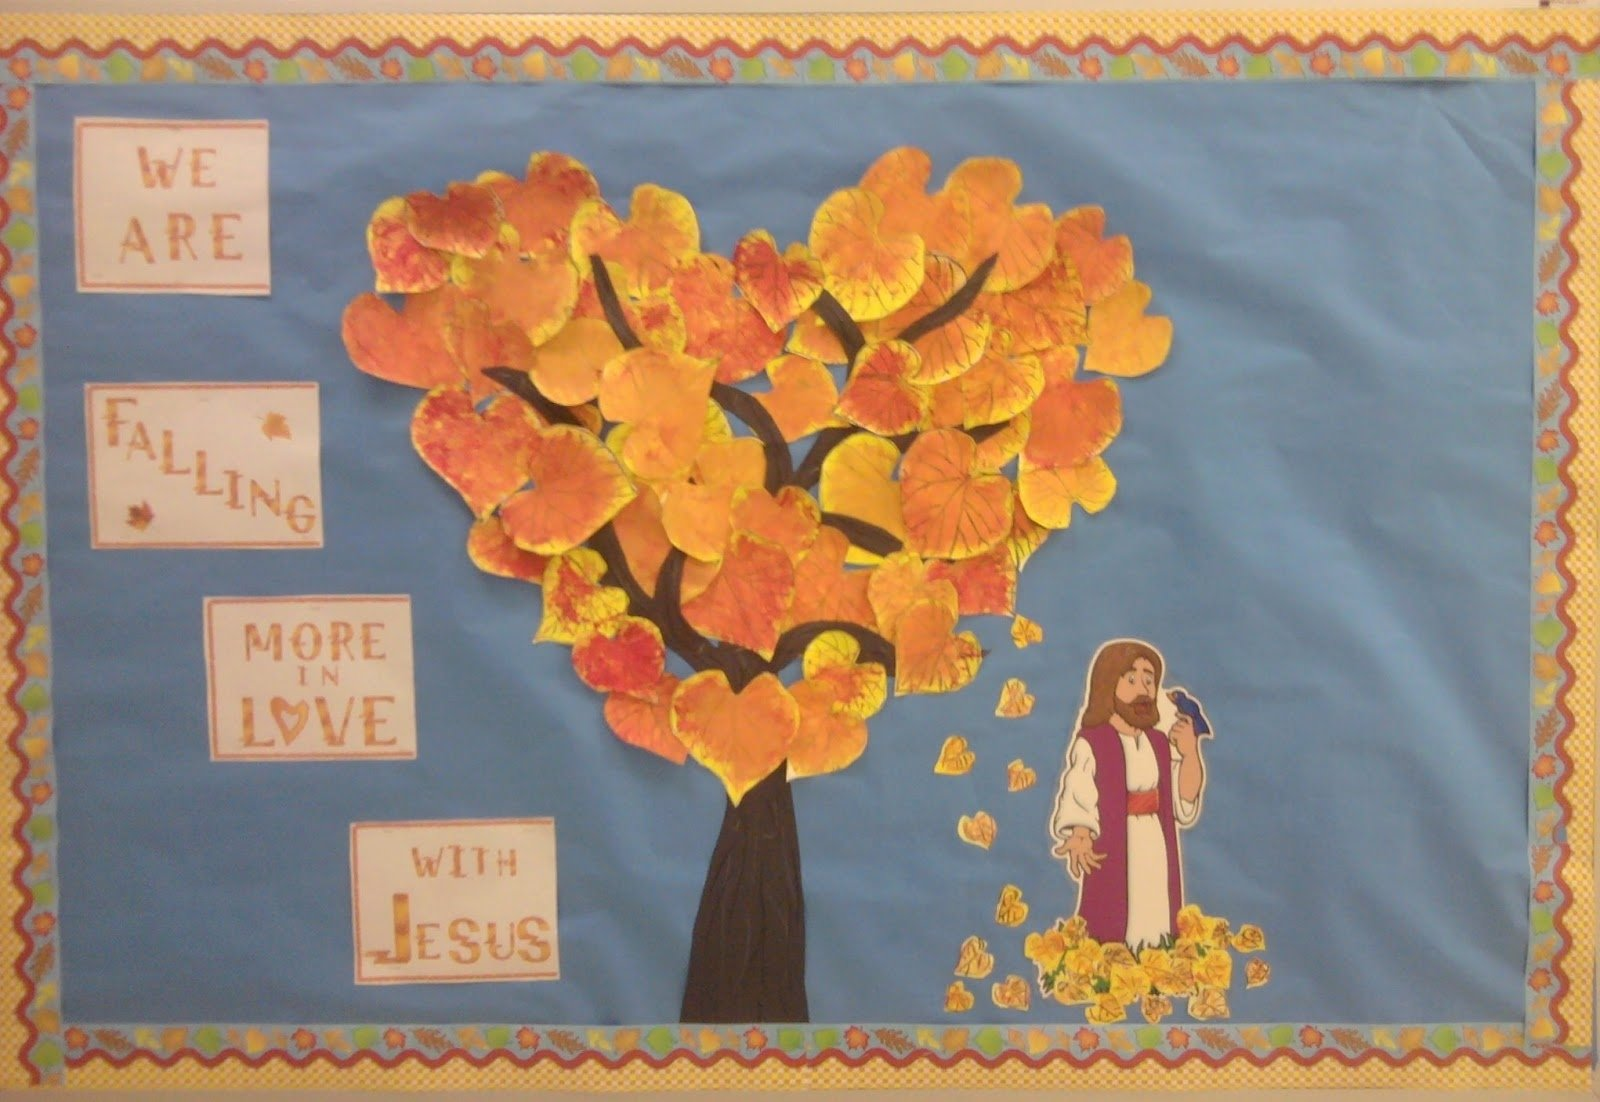 10 Best Fall Bulletin Board Ideas For Church charlottes clips and kindergarten kids autumn is here 1 2020